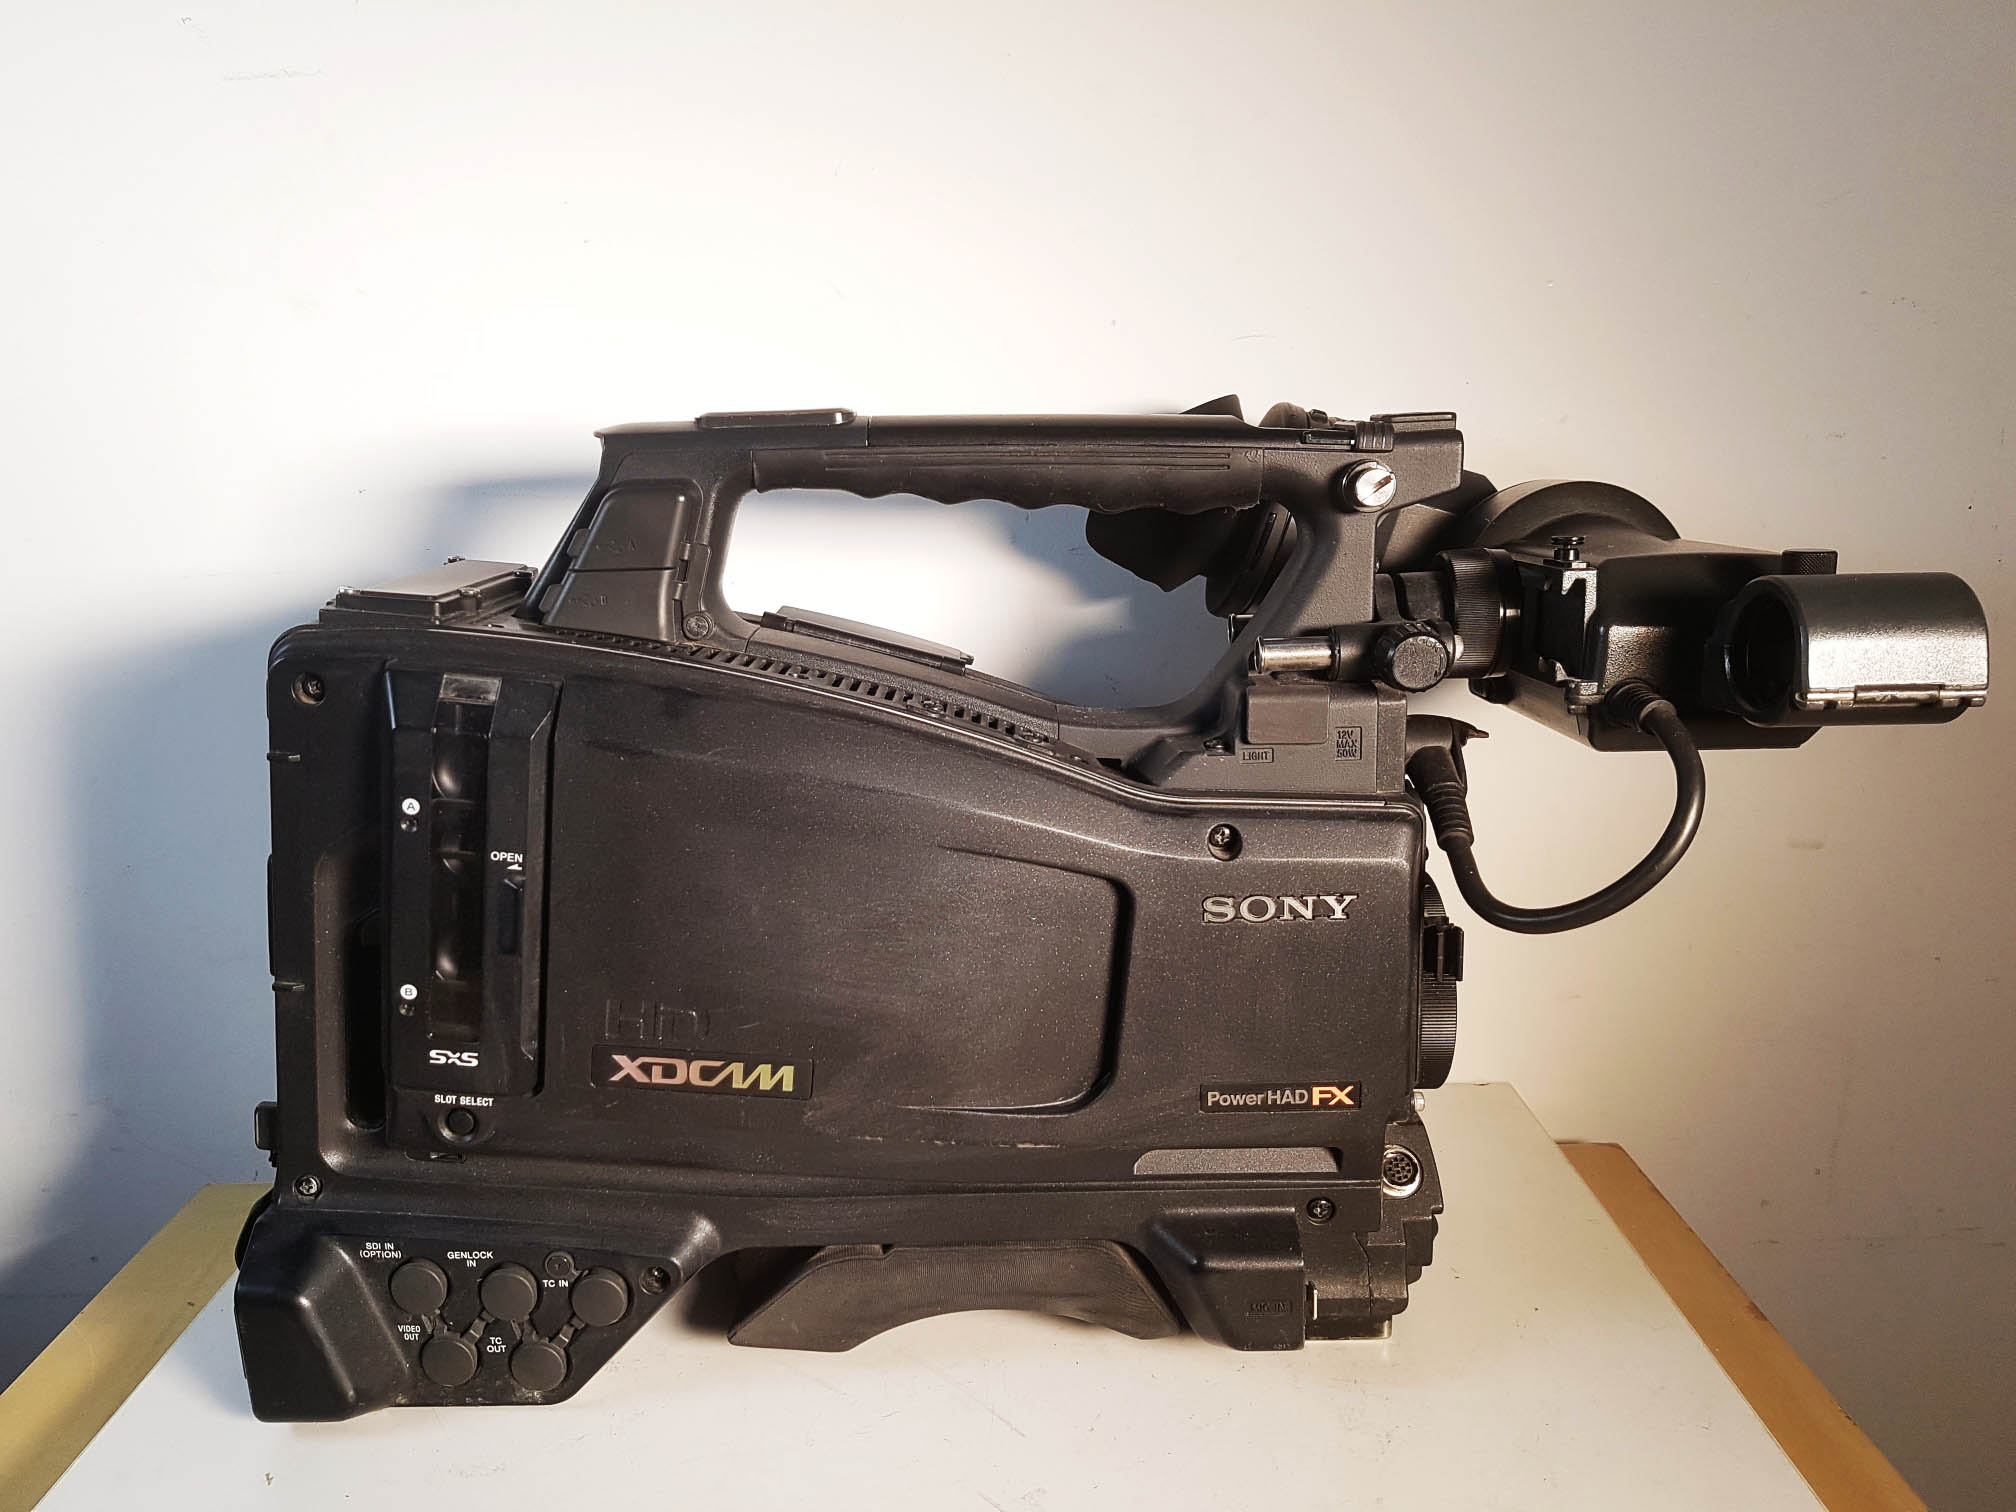 SONY PMW-500 + HDVF-20A - Image #1